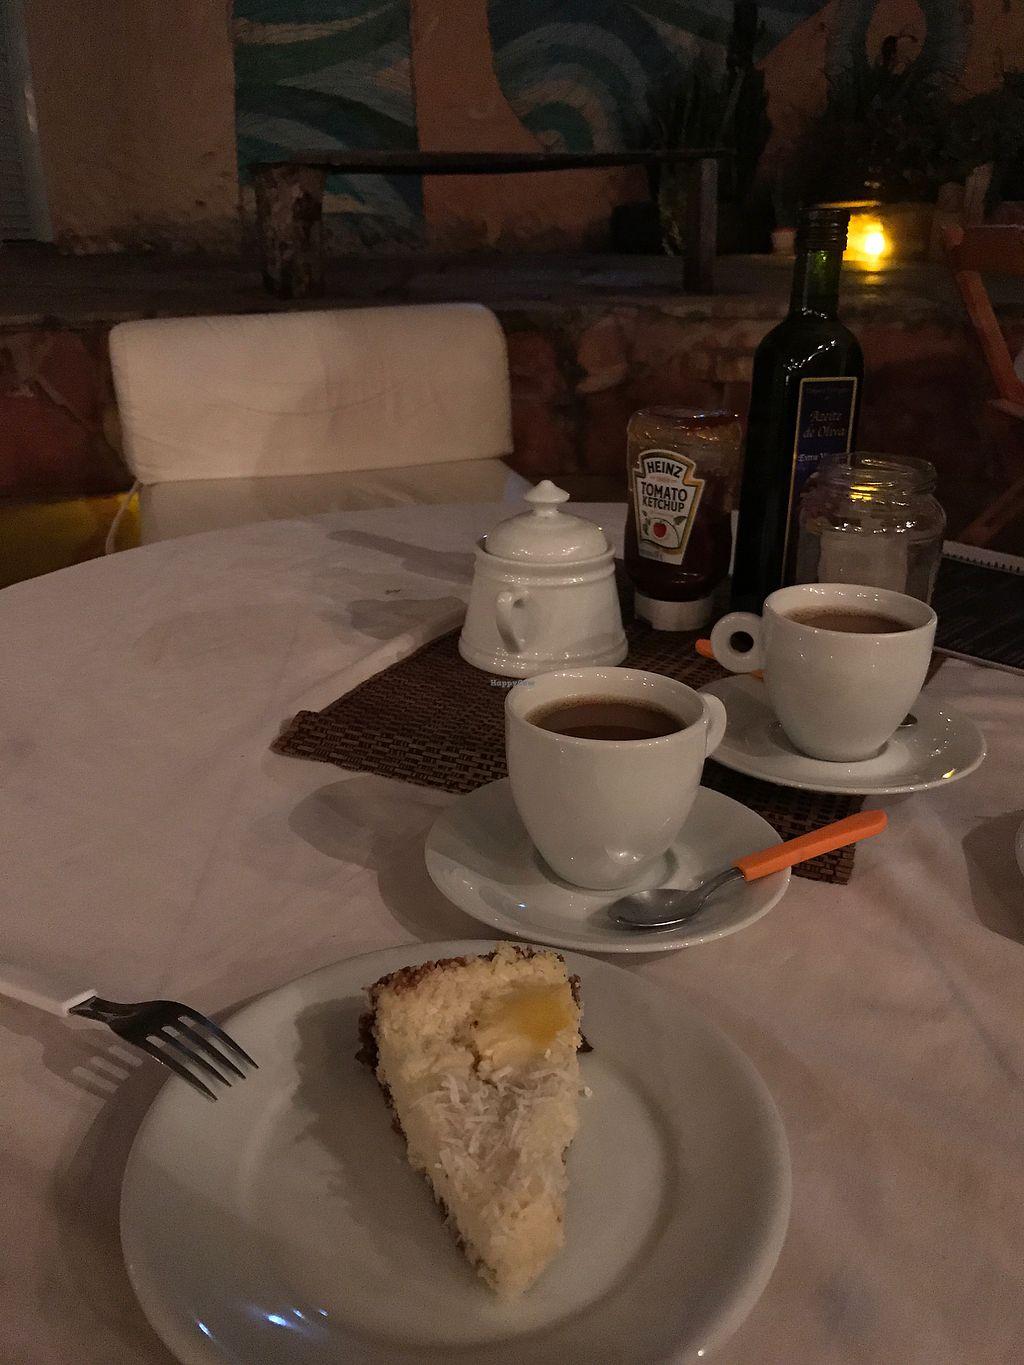 "Photo of Coisas da Drica  by <a href=""/members/profile/monizebn"">monizebn</a> <br/>Raw pie and coffee with rice milk <br/> August 10, 2017  - <a href='/contact/abuse/image/79501/290990'>Report</a>"